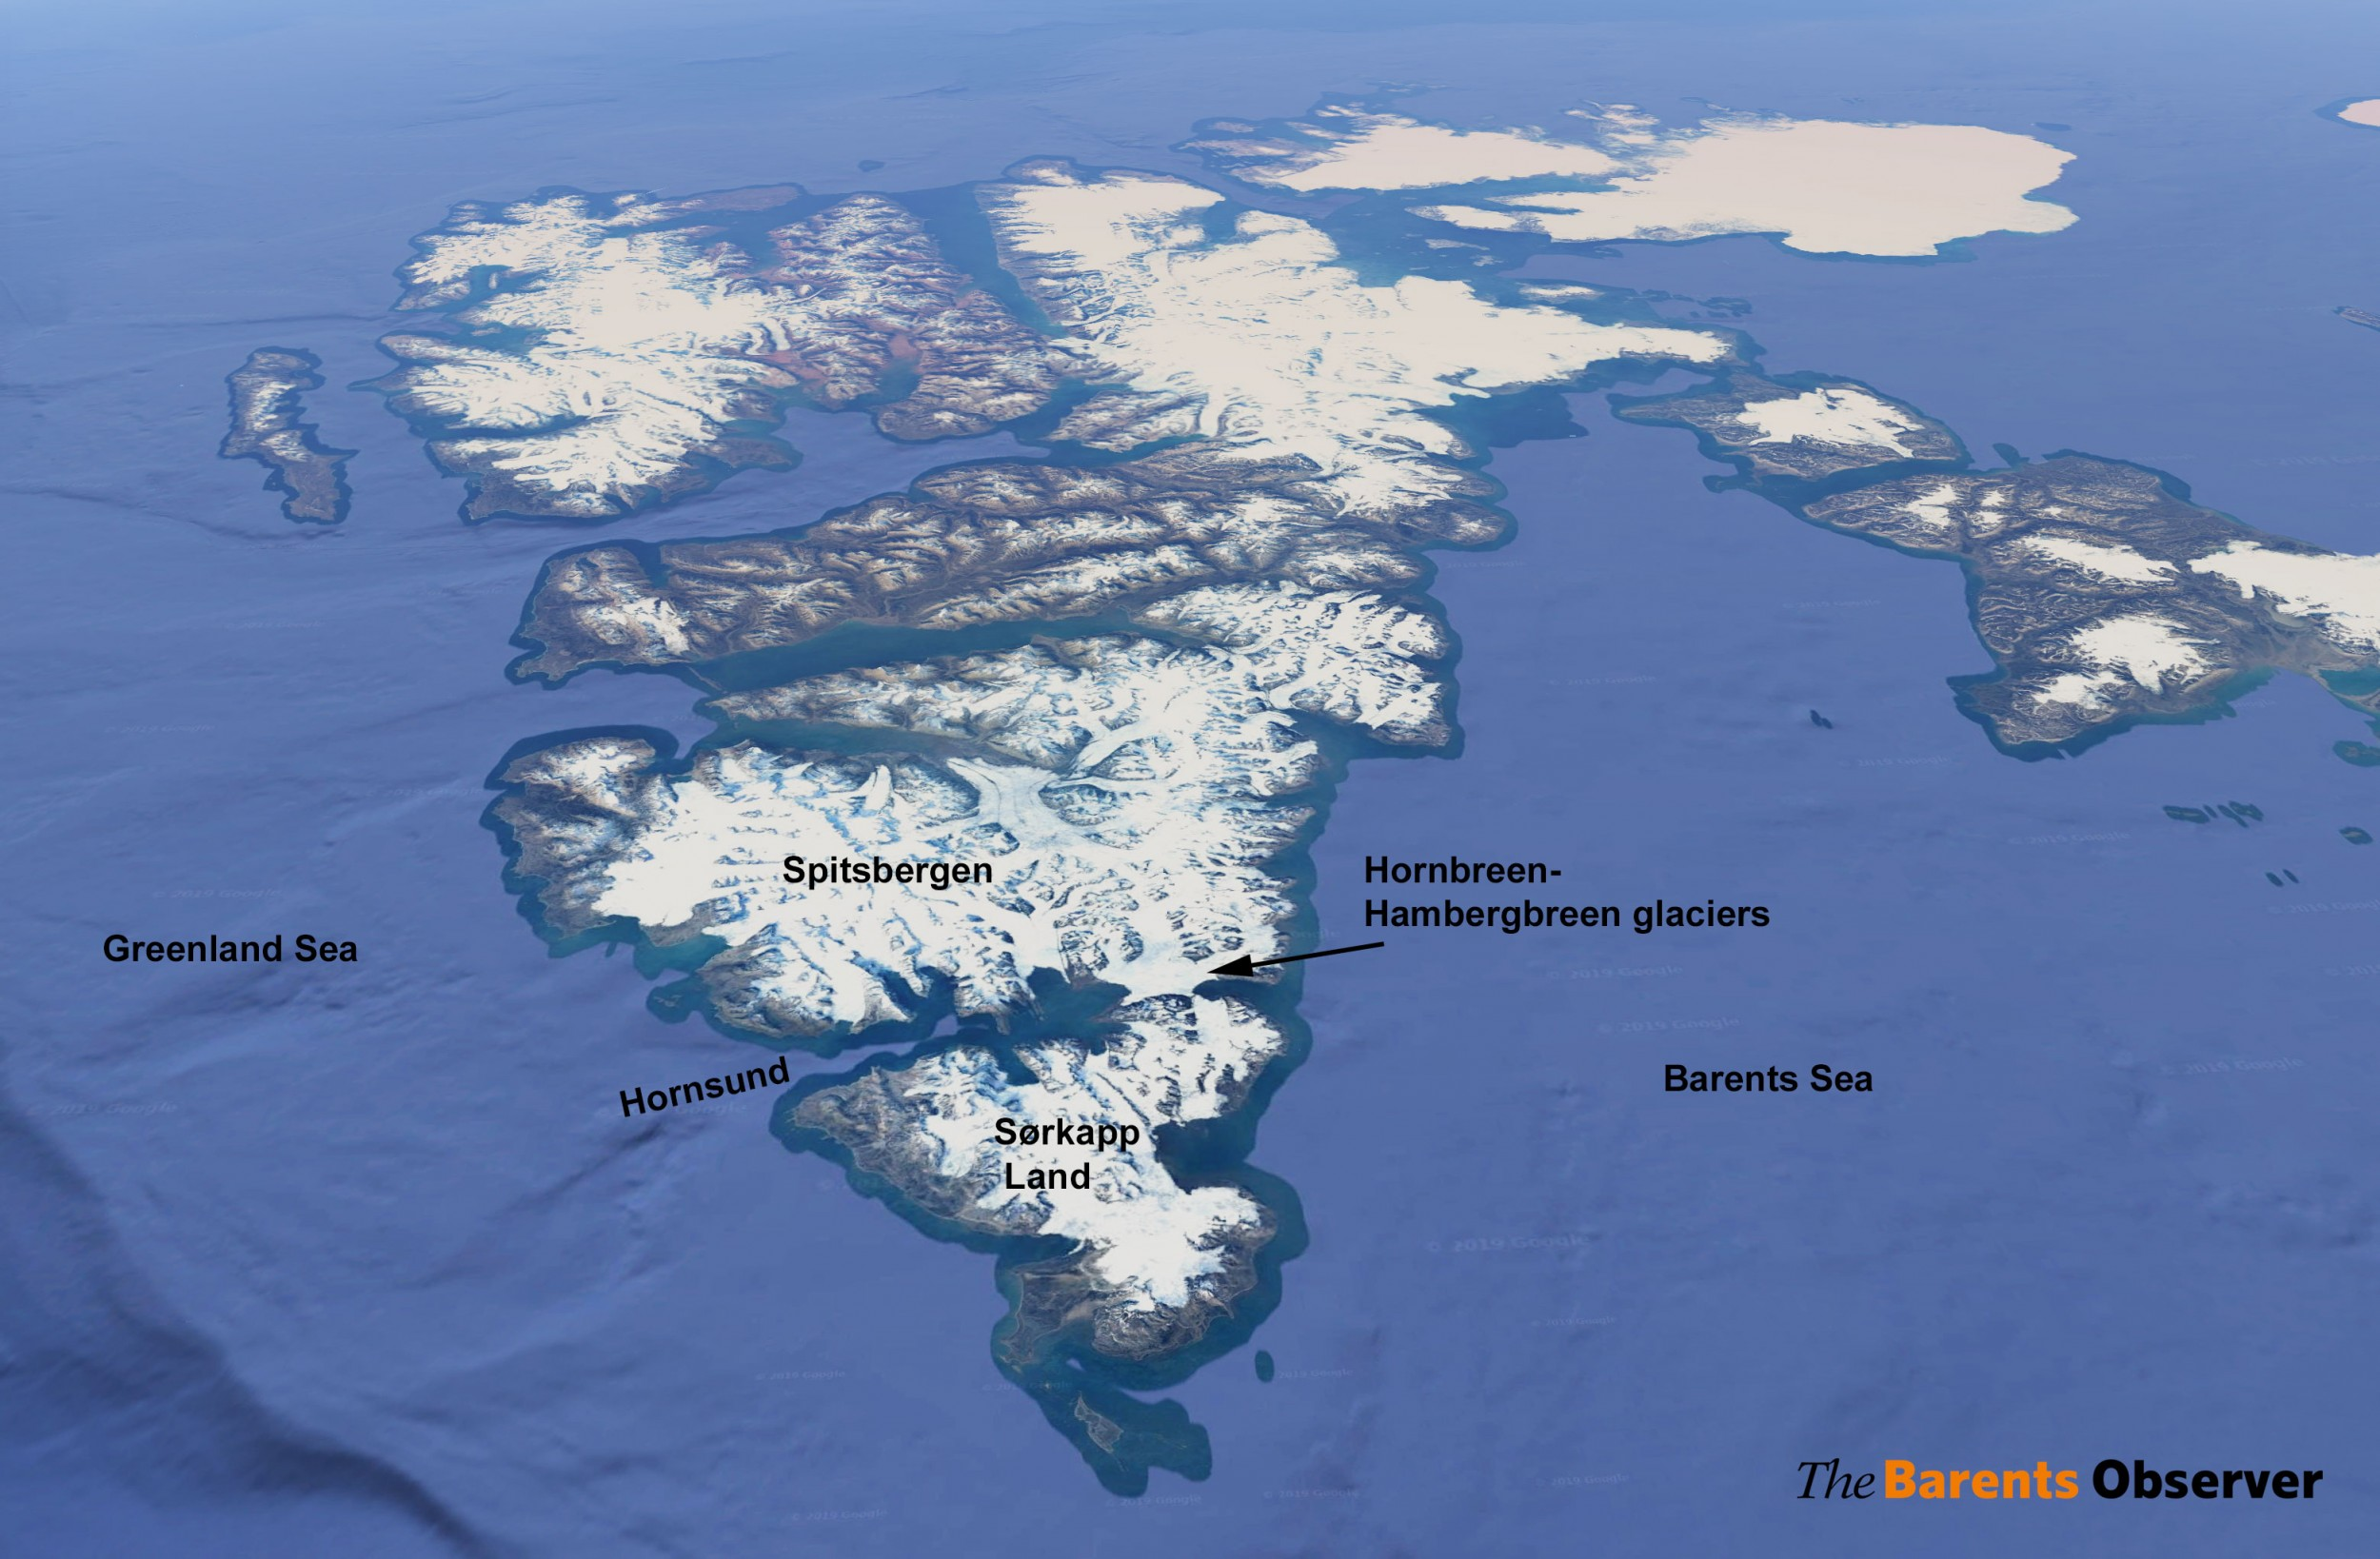 Climate change is poised to divide Norway's largest Arctic island into two - Arctic Today